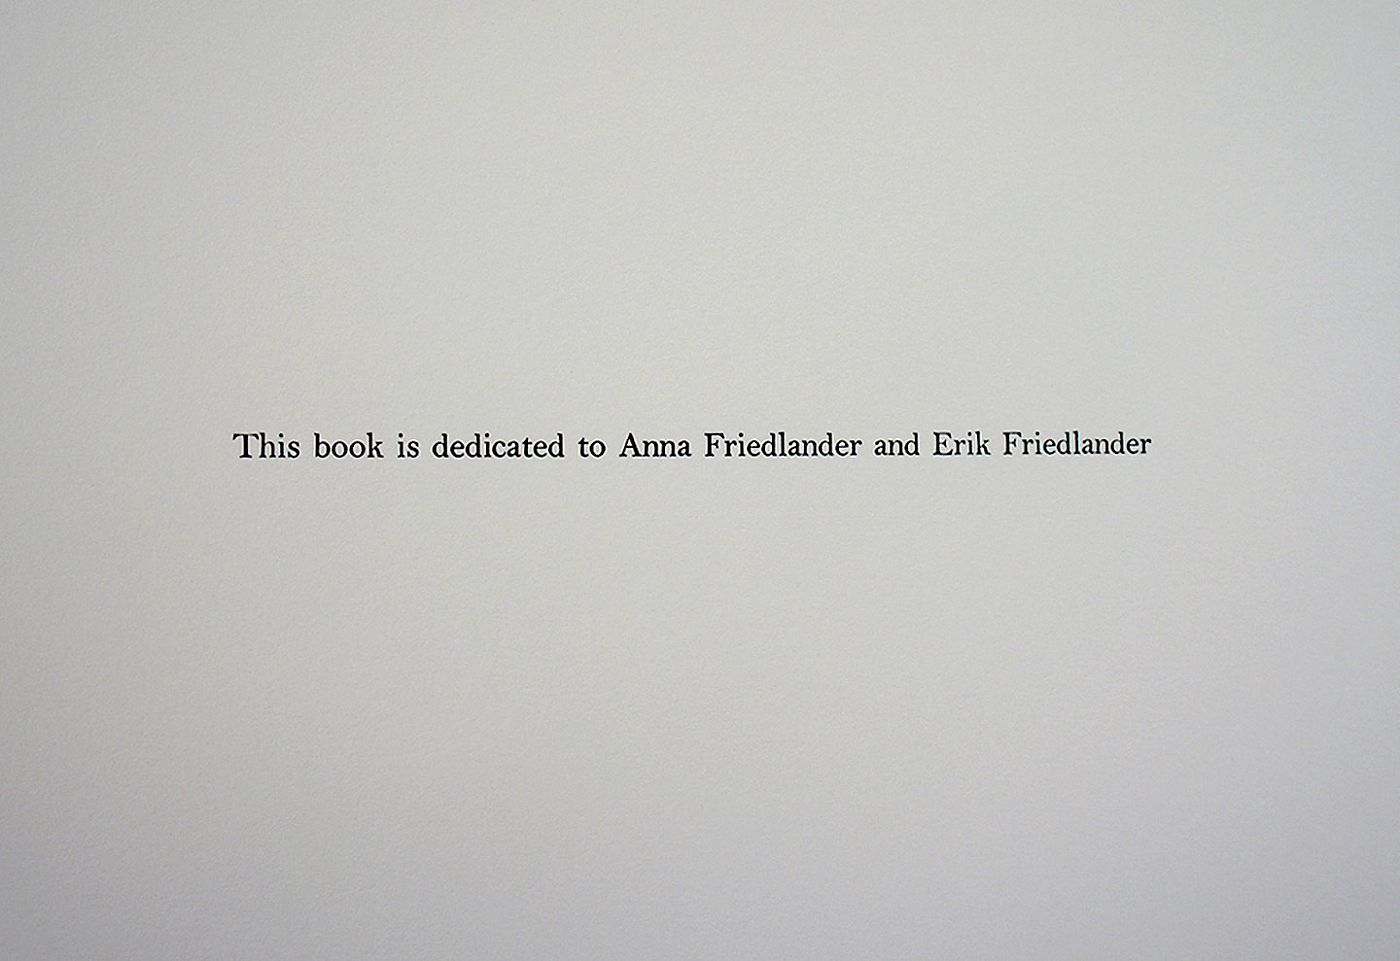 Lee Friedlander: The American Monument (Deluxe Limited Edition with 10 Vintage Gelatin Silver Prints)